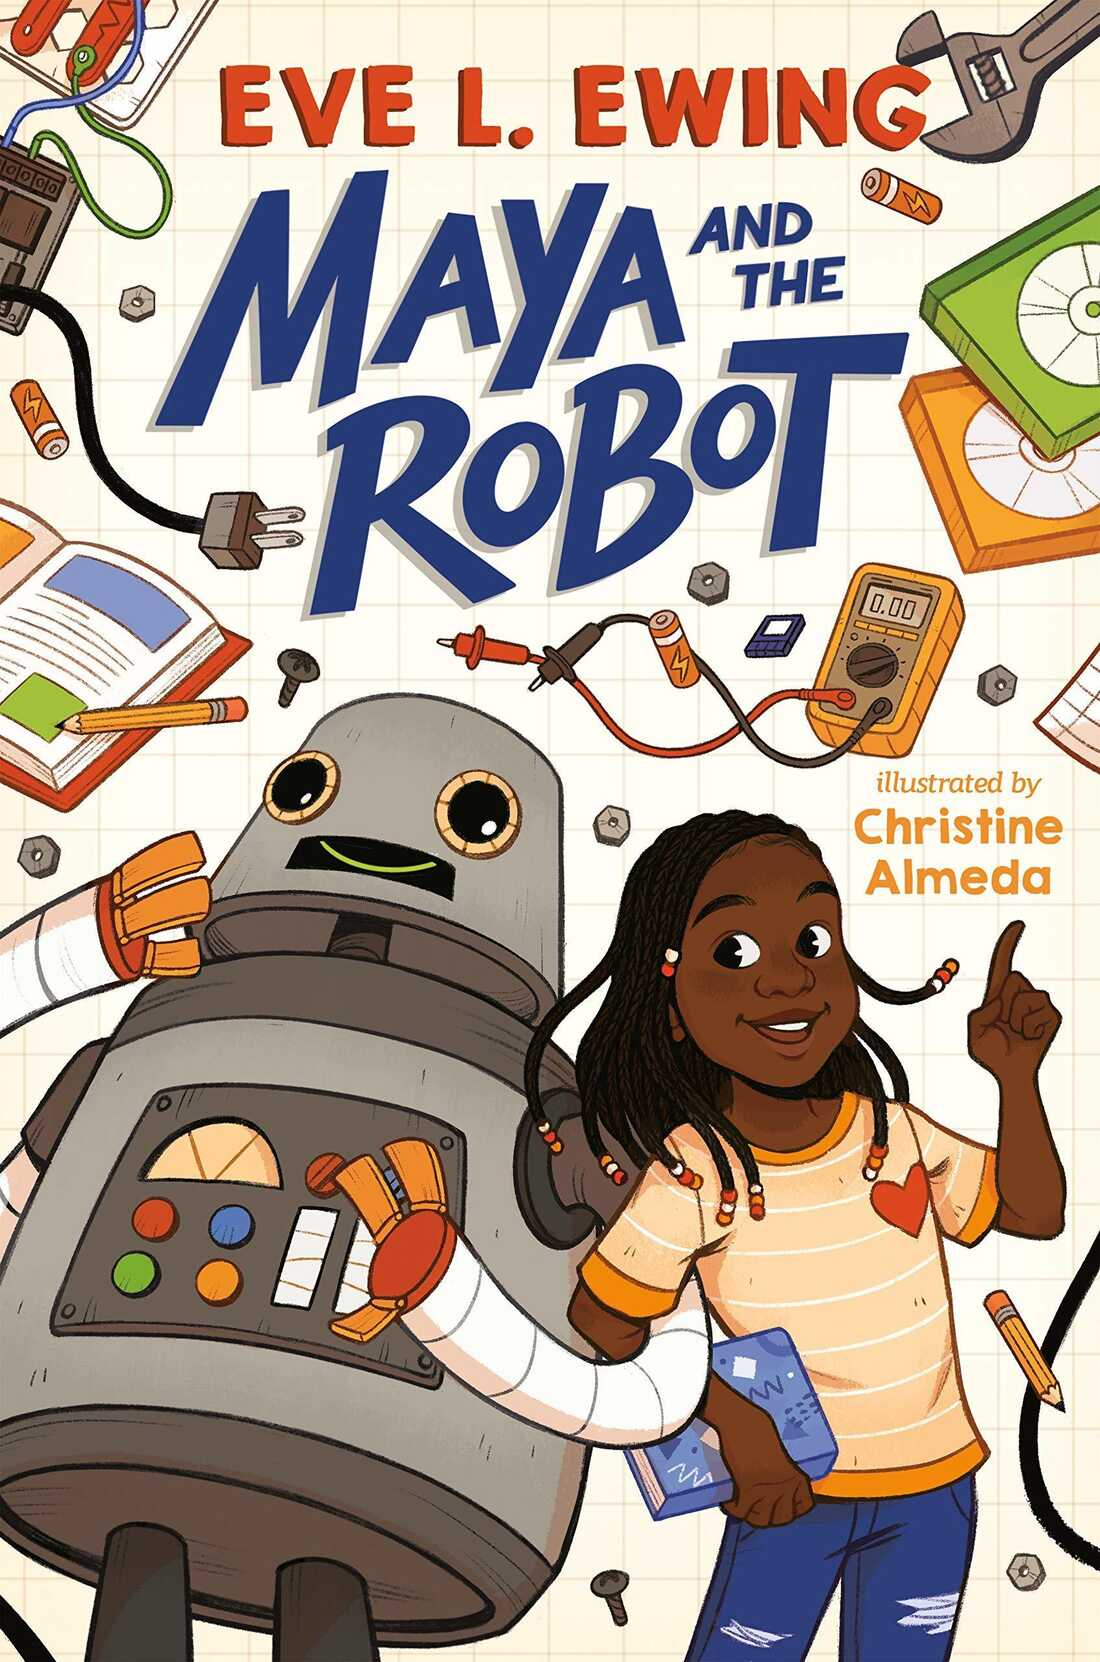 Maya and the Robot by Eve. L. Ewing, illustrated by Christine Almeda